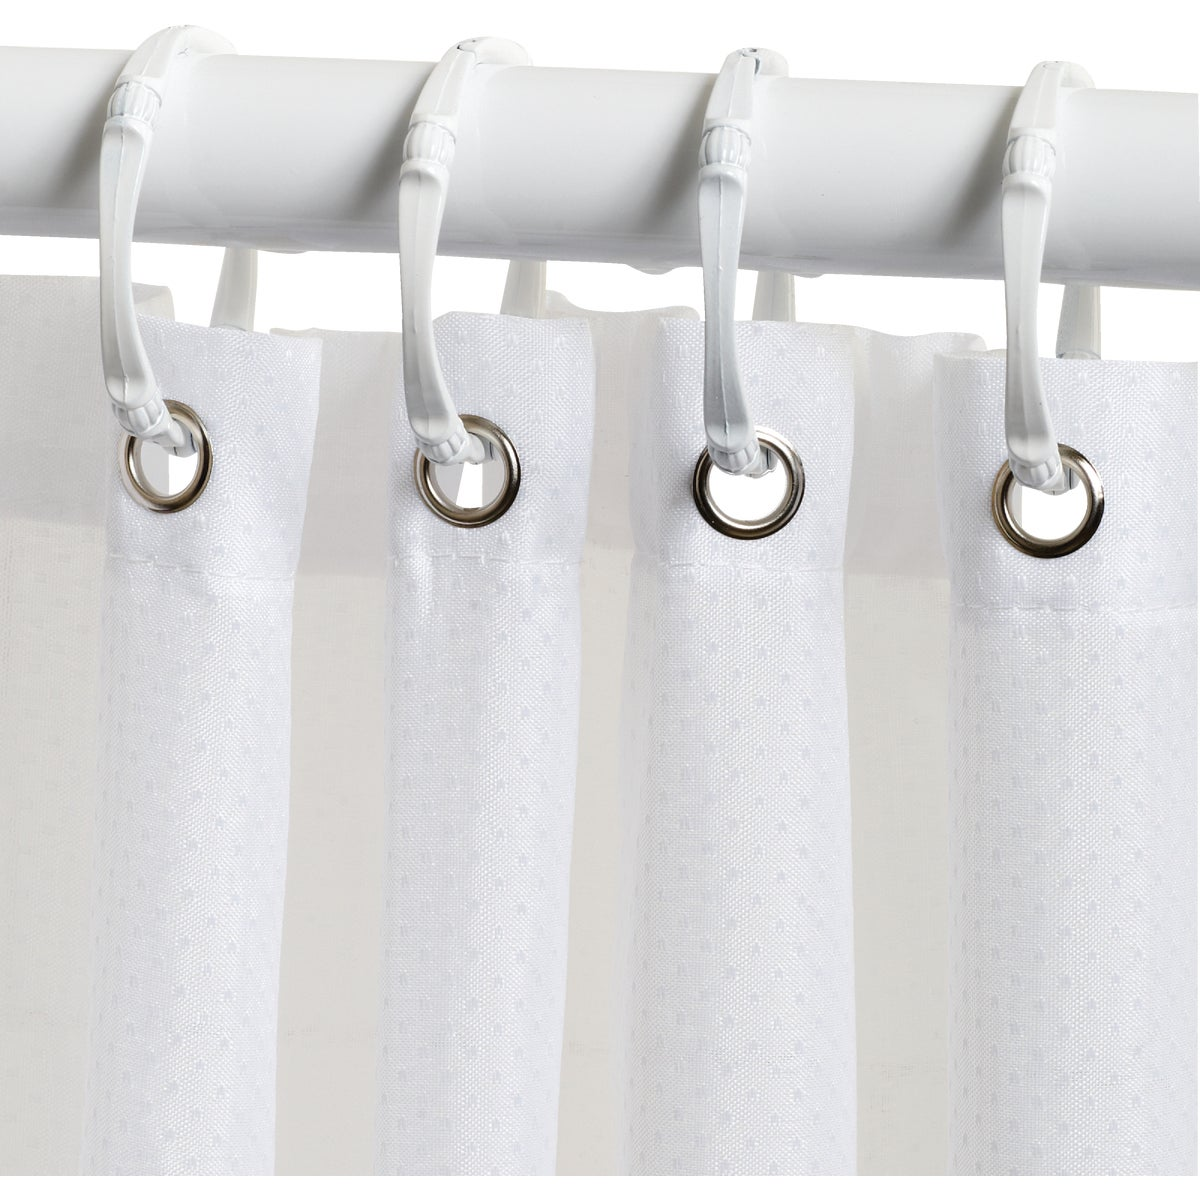 WHITE SHOWER CURTAIN - H20WW by Zenith Prod Corp